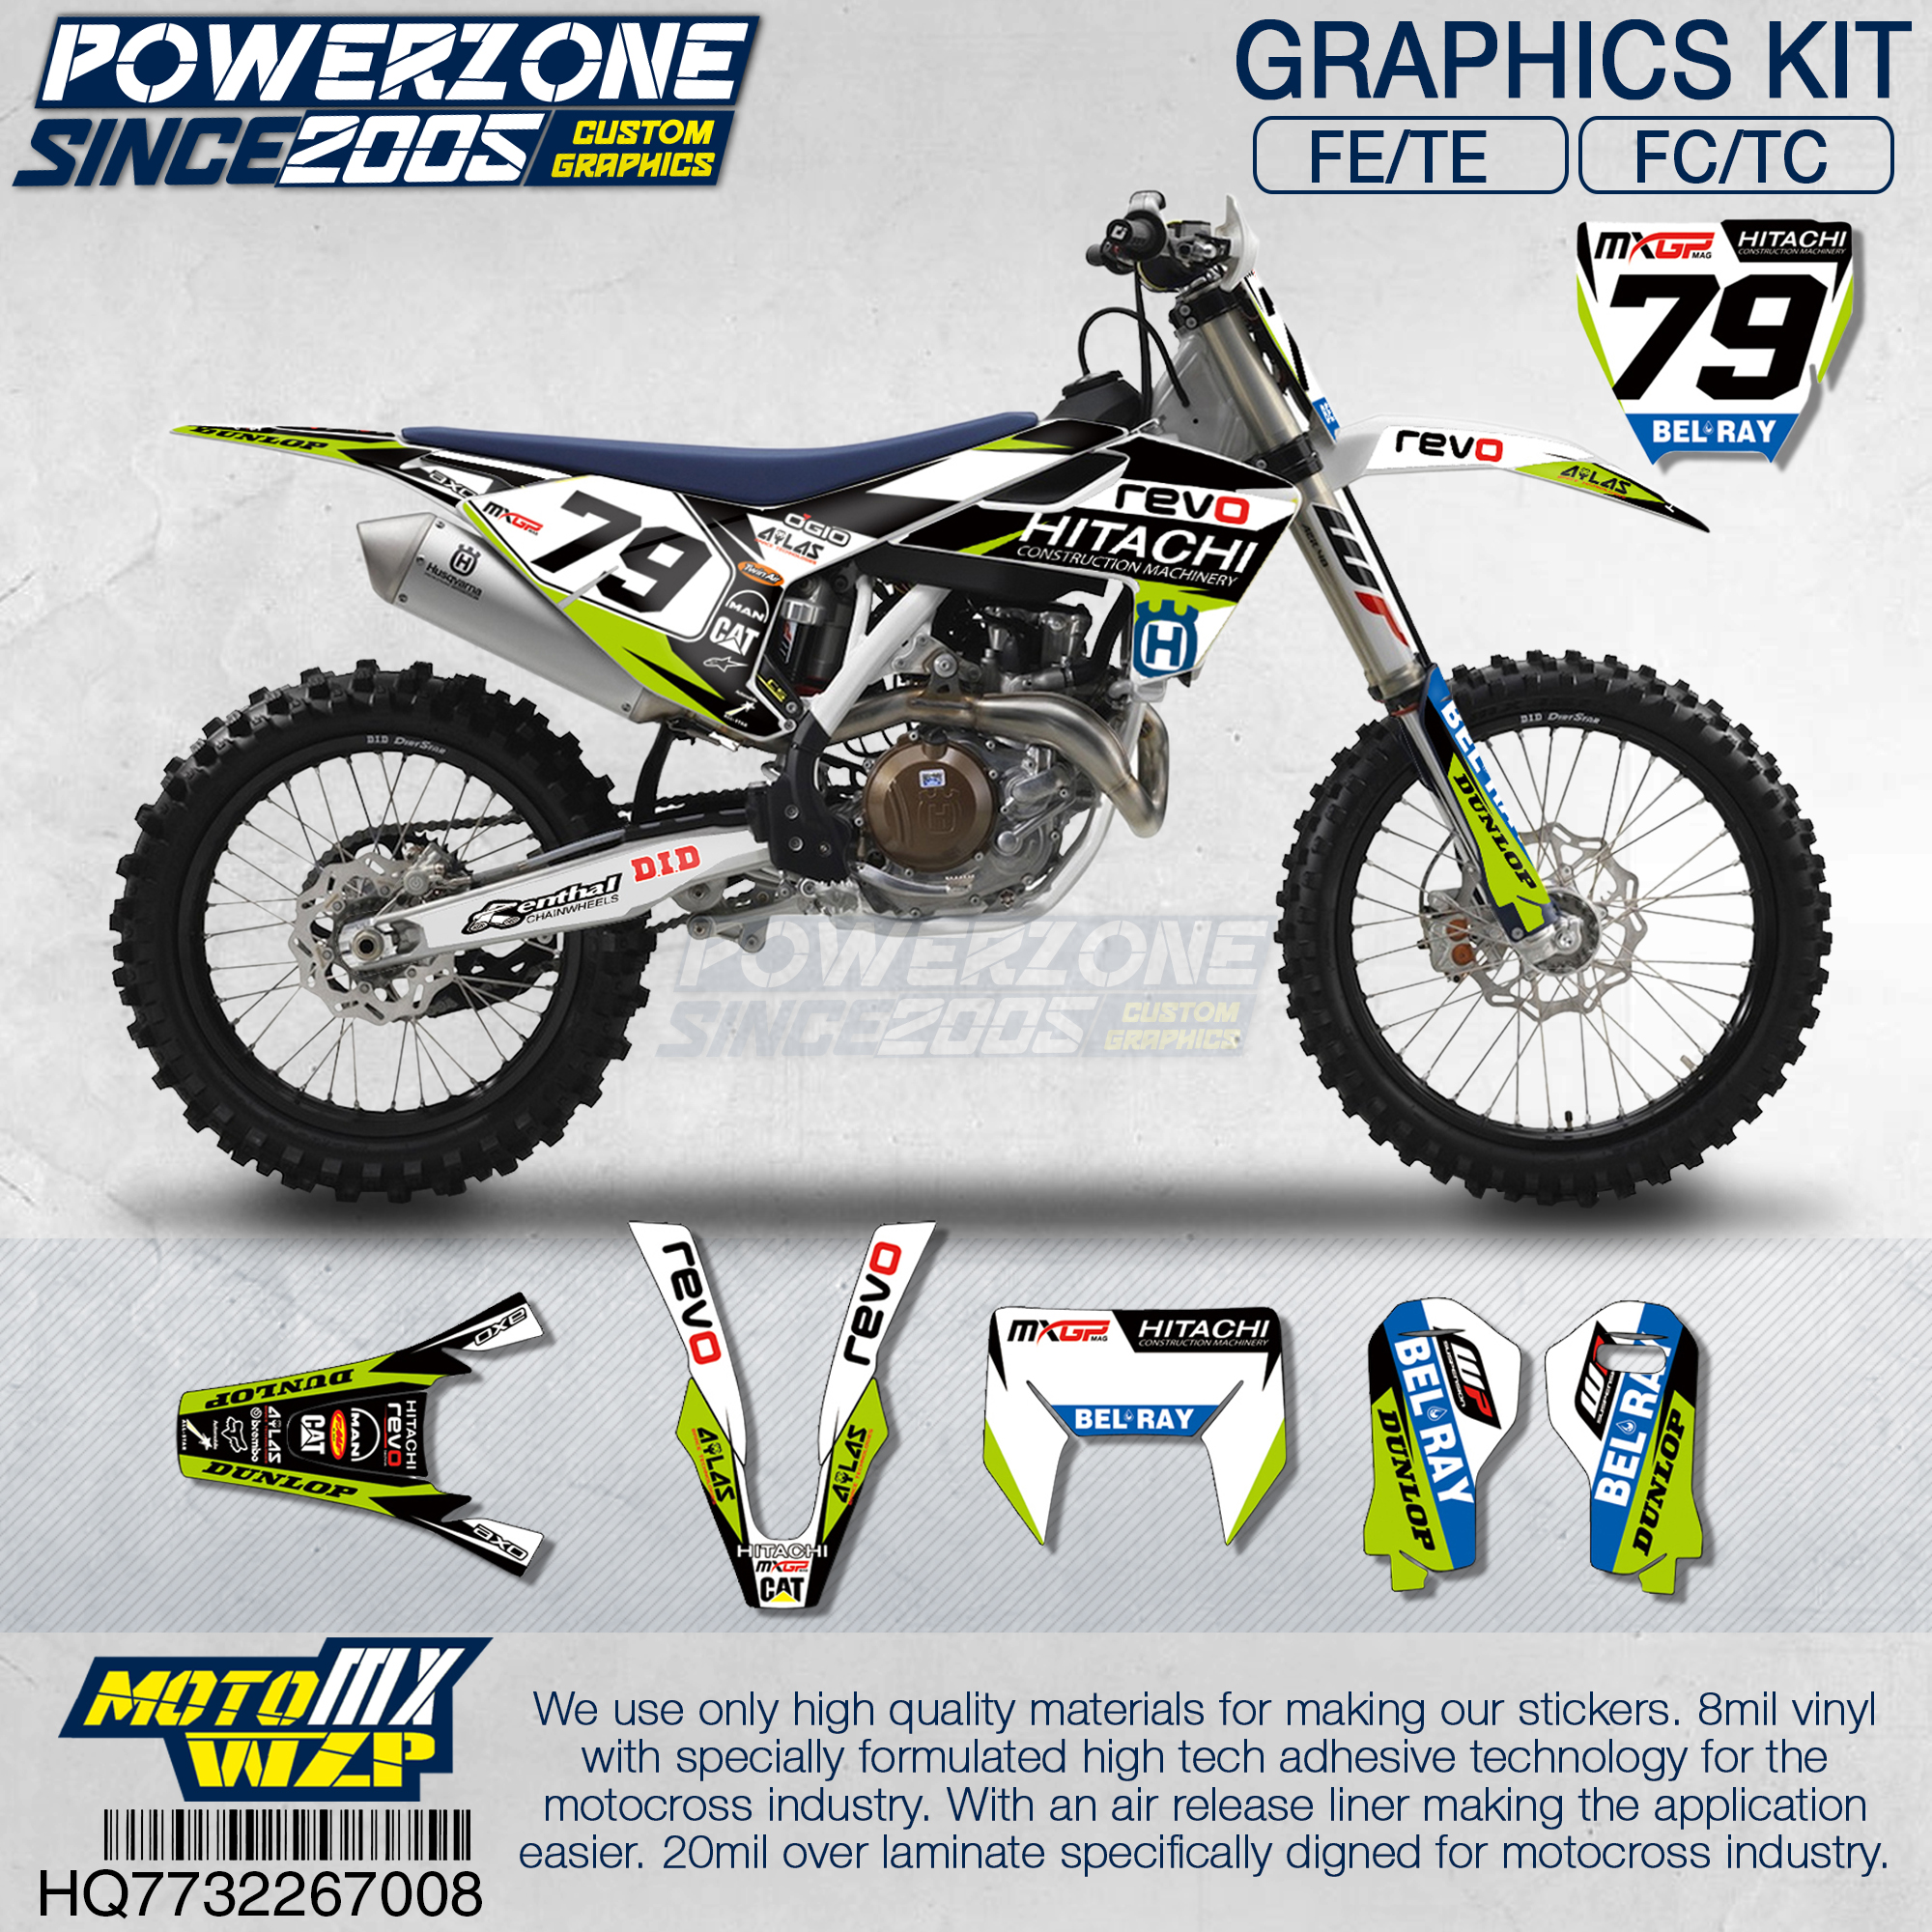 Customized Team Graphics Backgrounds Decals 3M Custom Stickers REVO Kit For Husqvarna 2014 19 FE TE